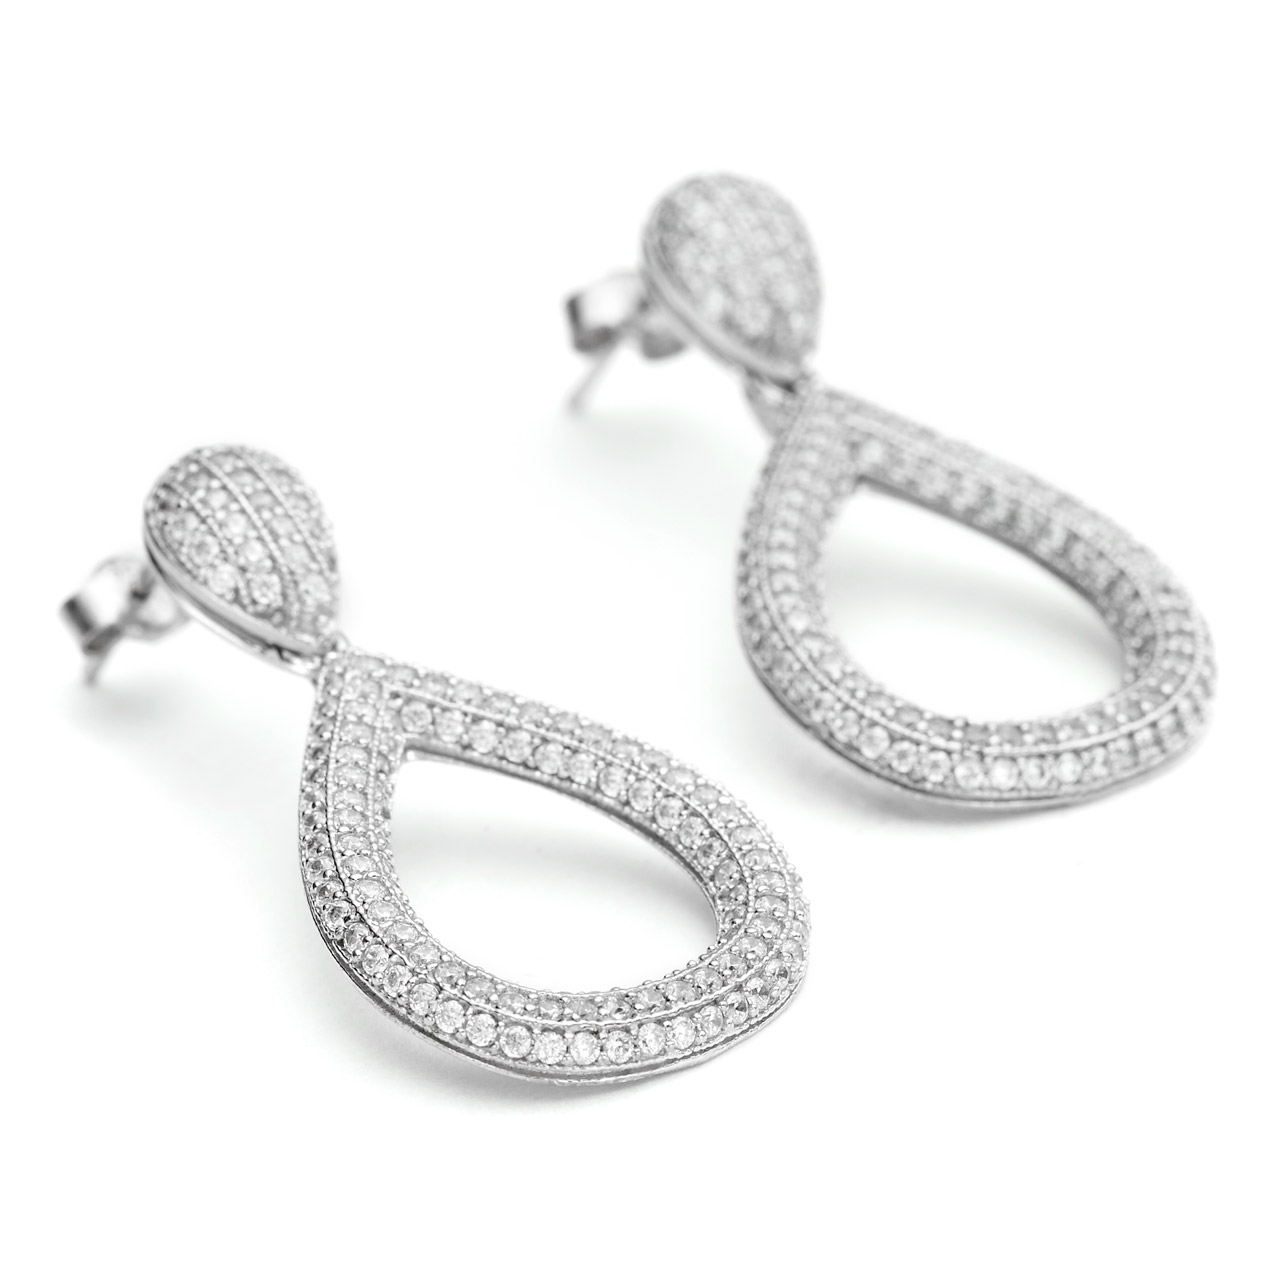 f31118fd8 Constellations collection solid shape teardrop earrings in 925 sterling  silver and white rhodium finish